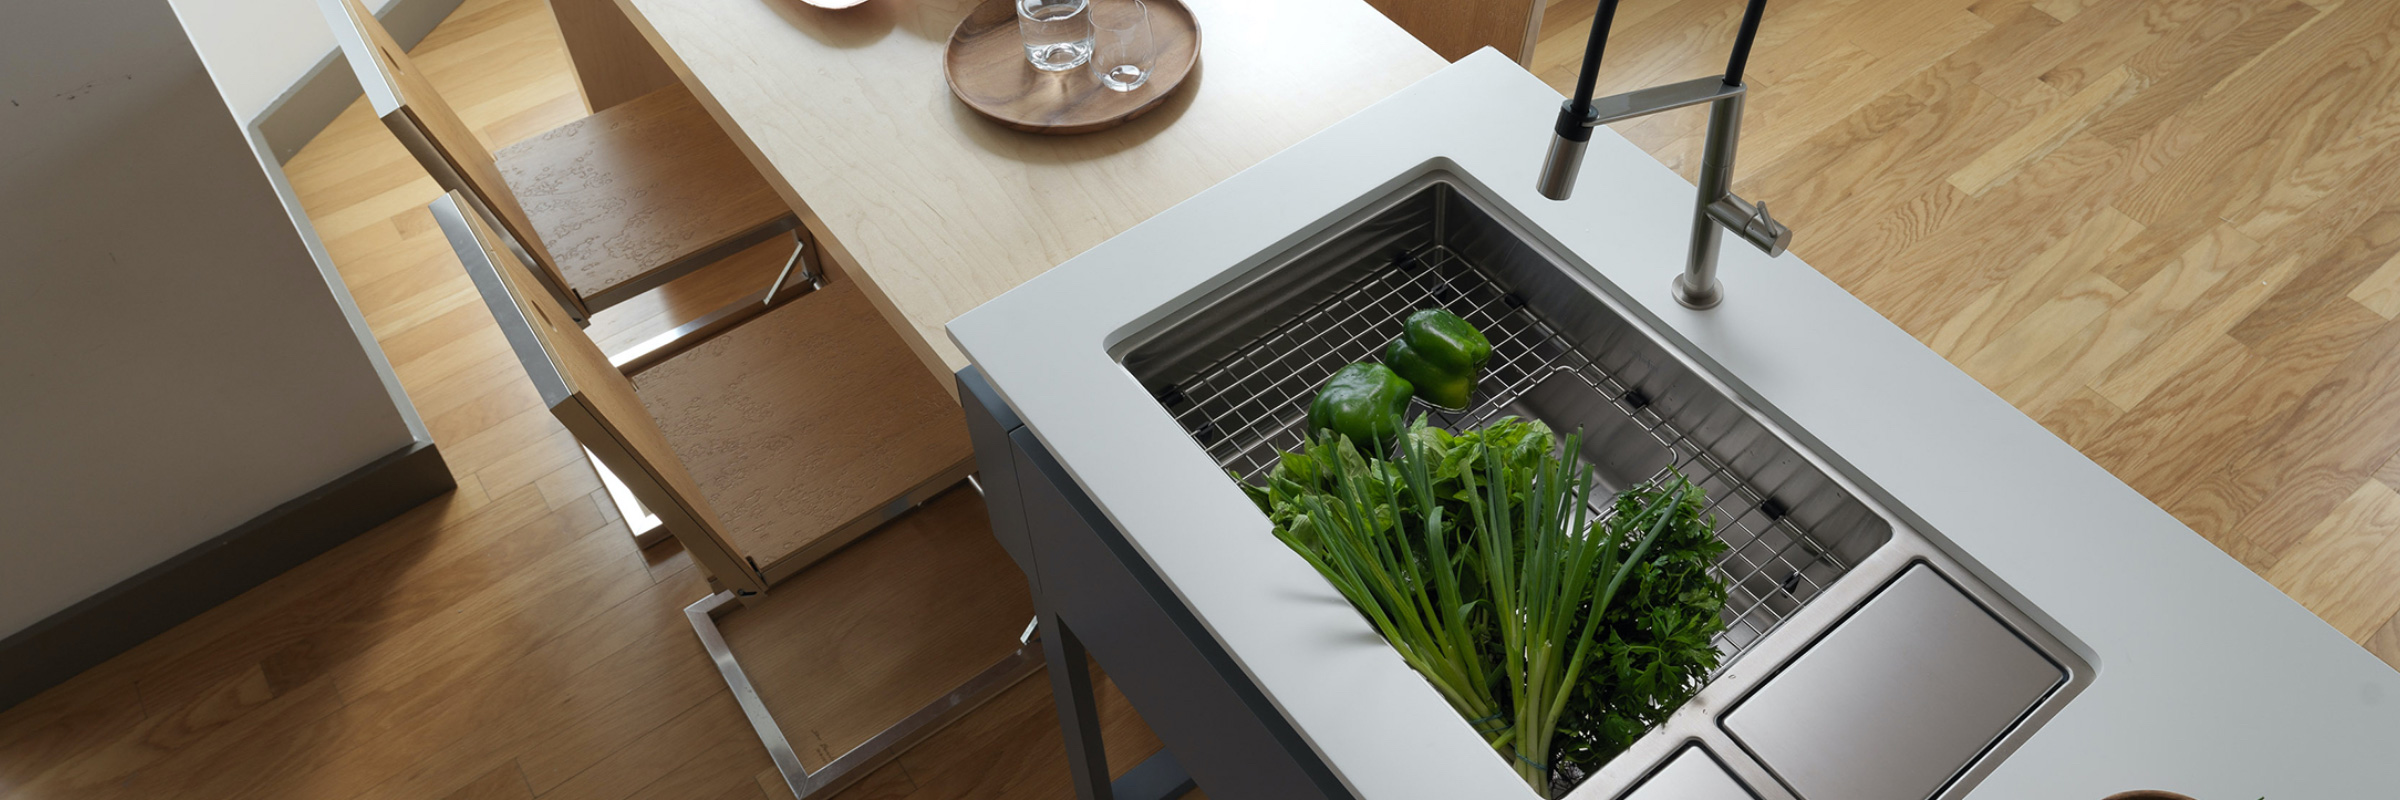 Kitchen concept with fresh vegetables in the sink